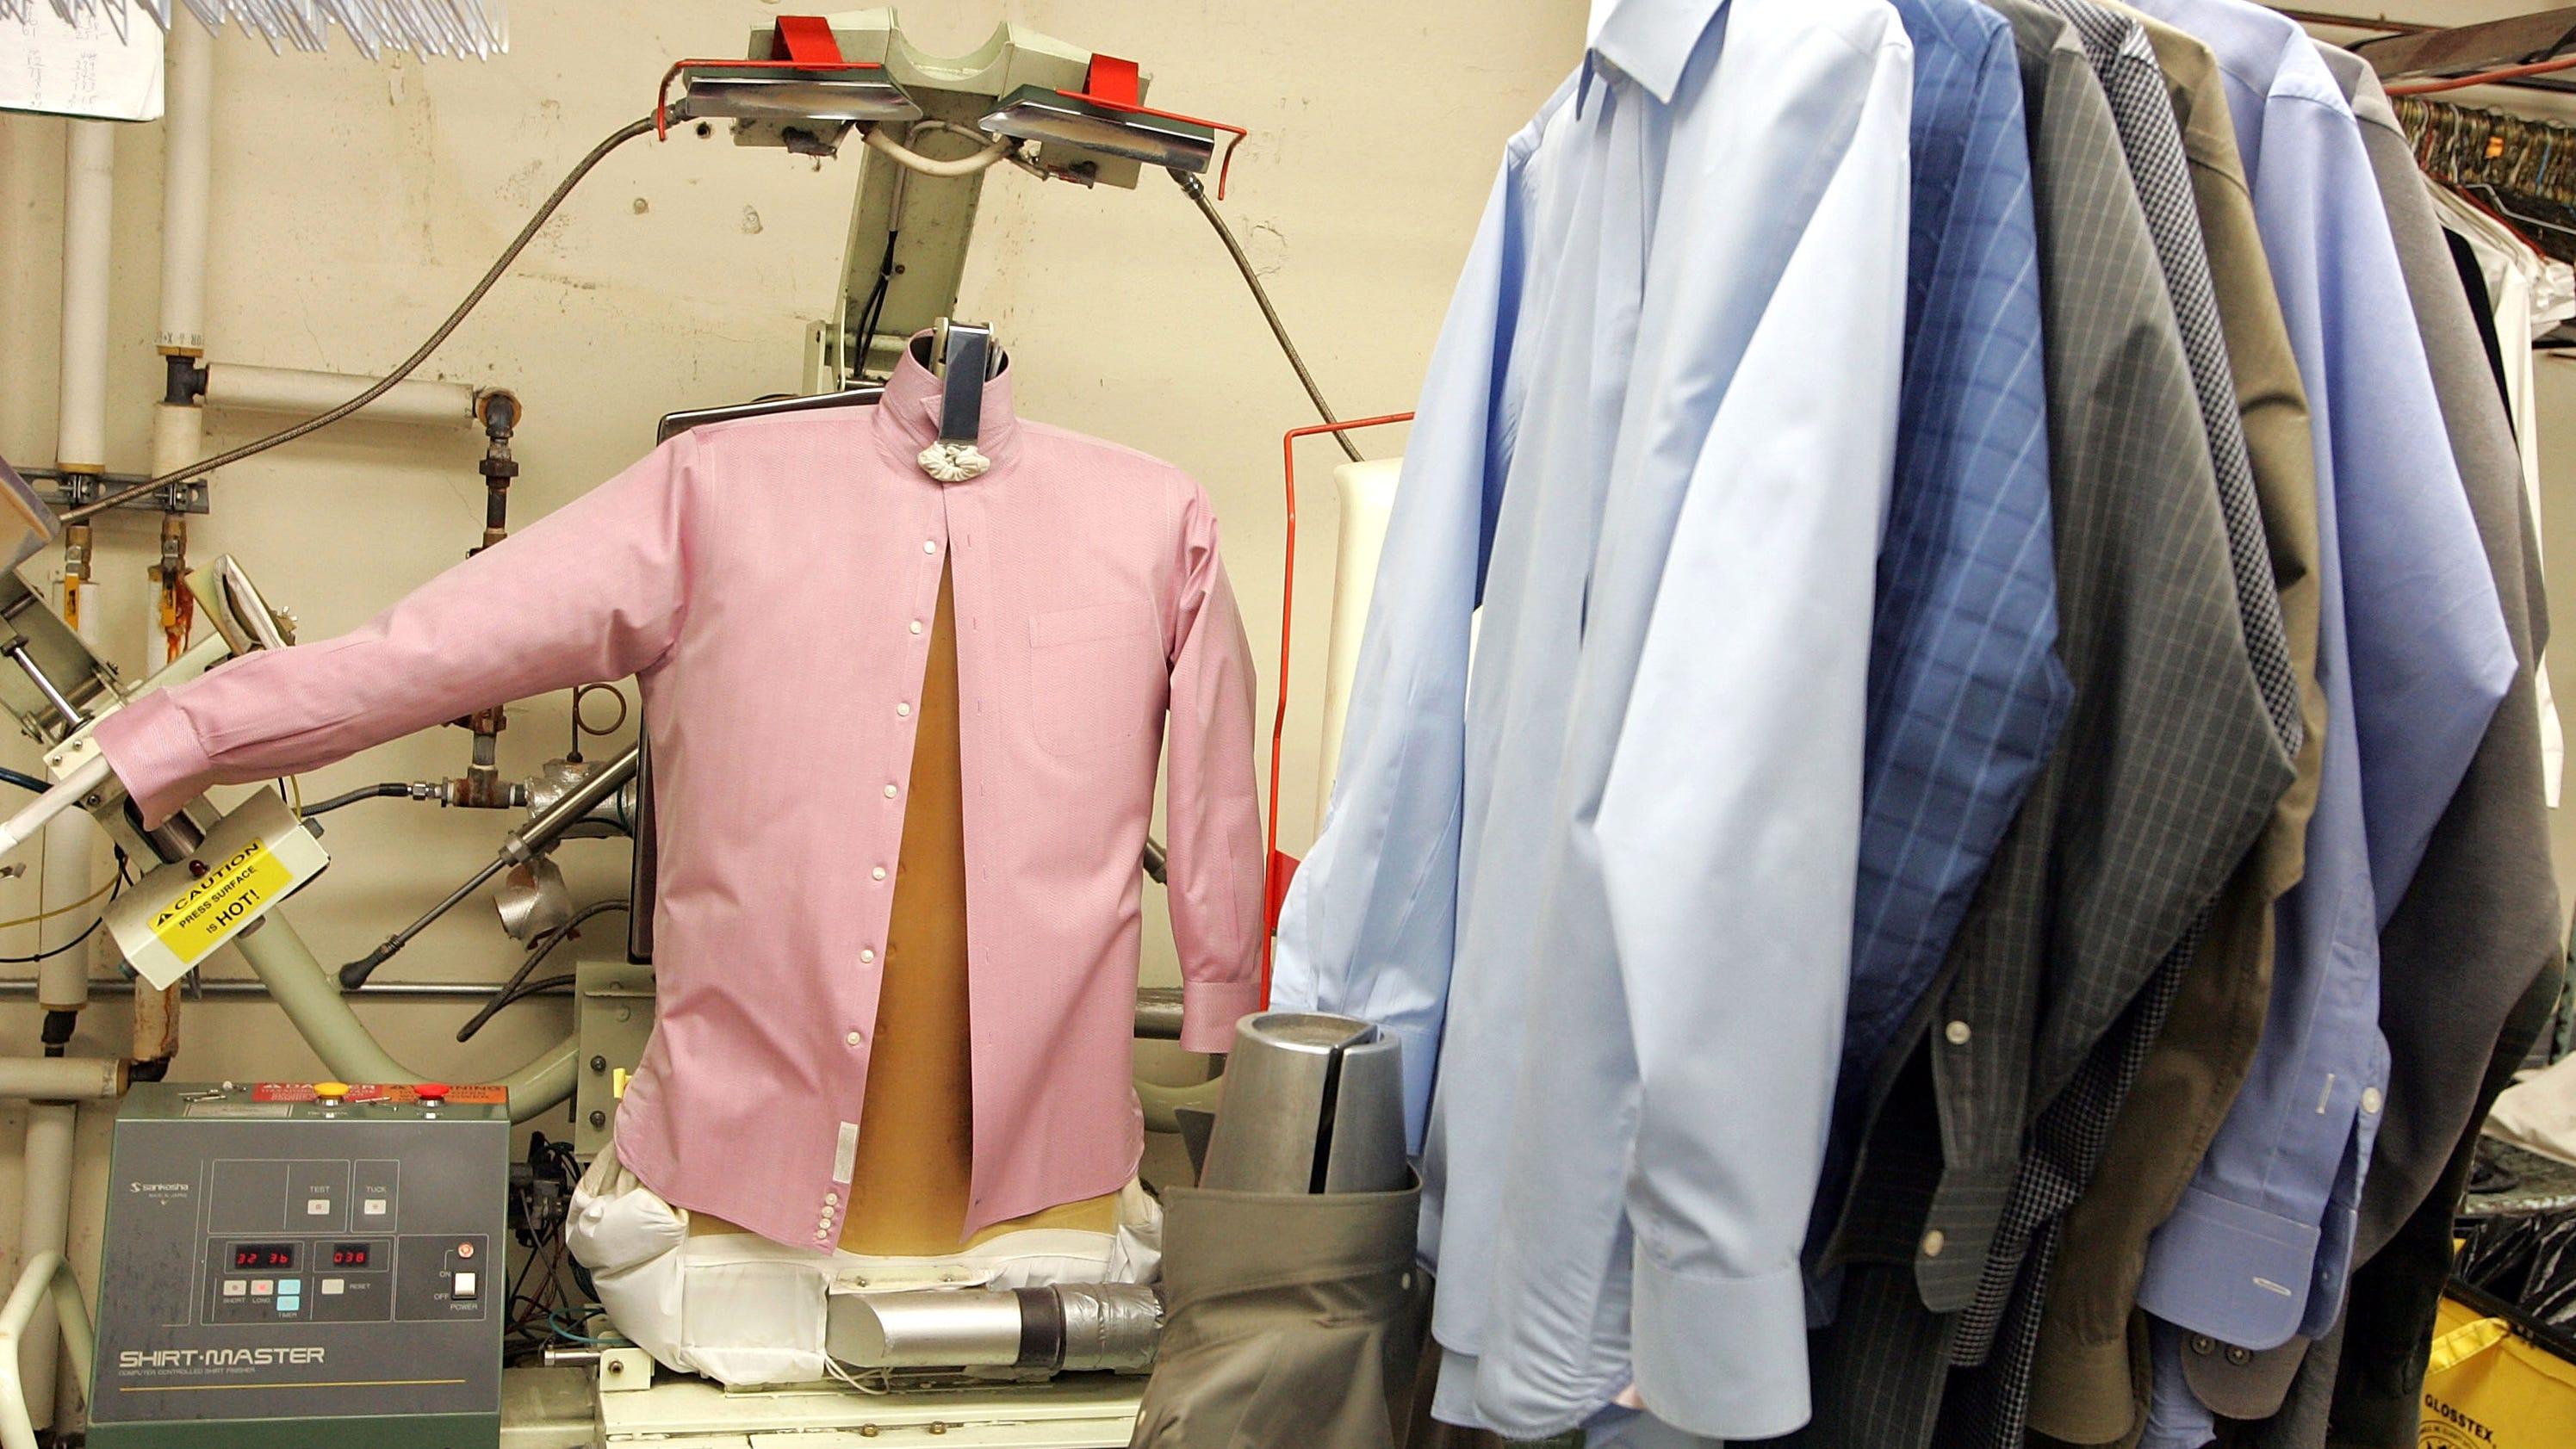 Ruined clothes drycleaning customers have rights drycleaning customers have rights solutioingenieria Image collections